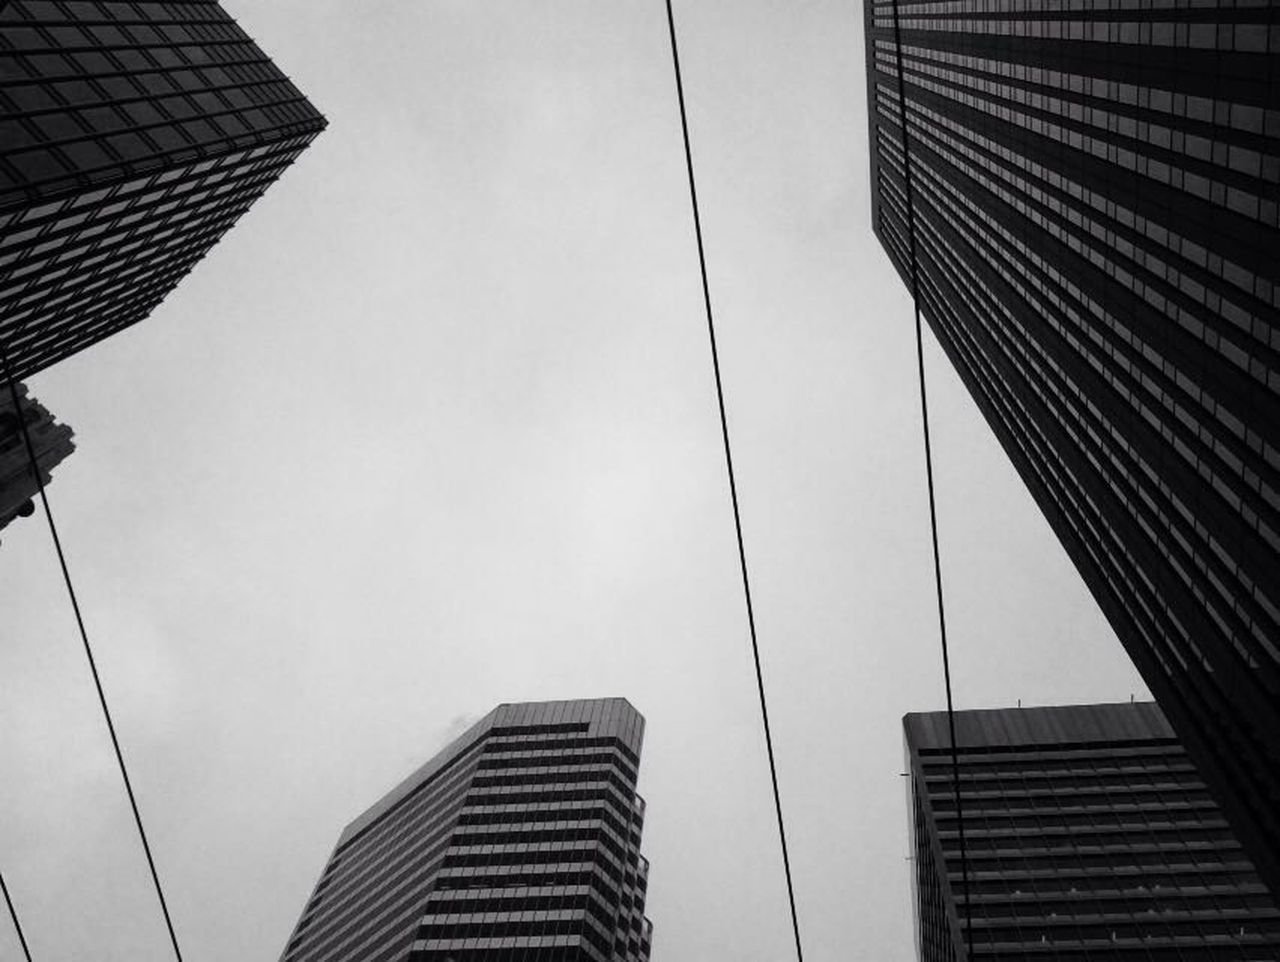 Architecture Skyscraper Built Structure Low Angle View Modern City Outdoors Urban Skyline Capturing The Moment Travel Destinations Architecture The Street Photographer - 2017 EyeEm Awards Photooftheday Blackandwhite Like Like4like Picoftheday Photography Photographer San Francisco Cali Califorina SanFranciscoBay California Love City The Architect - 2017 EyeEm Awards